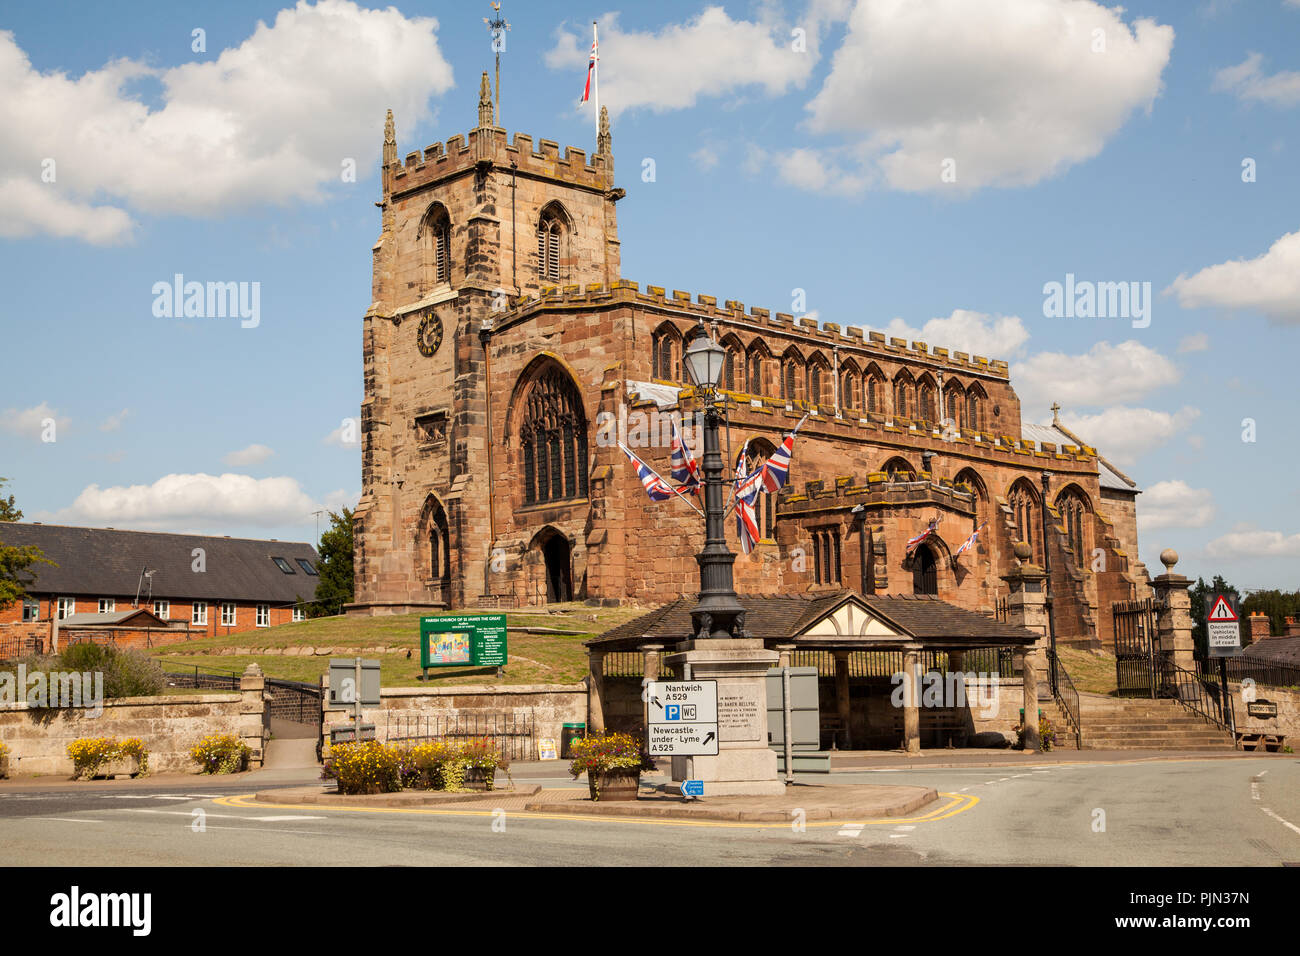 The parish church of St James the great in the Cheshire village of Audlem England UK - Stock Image